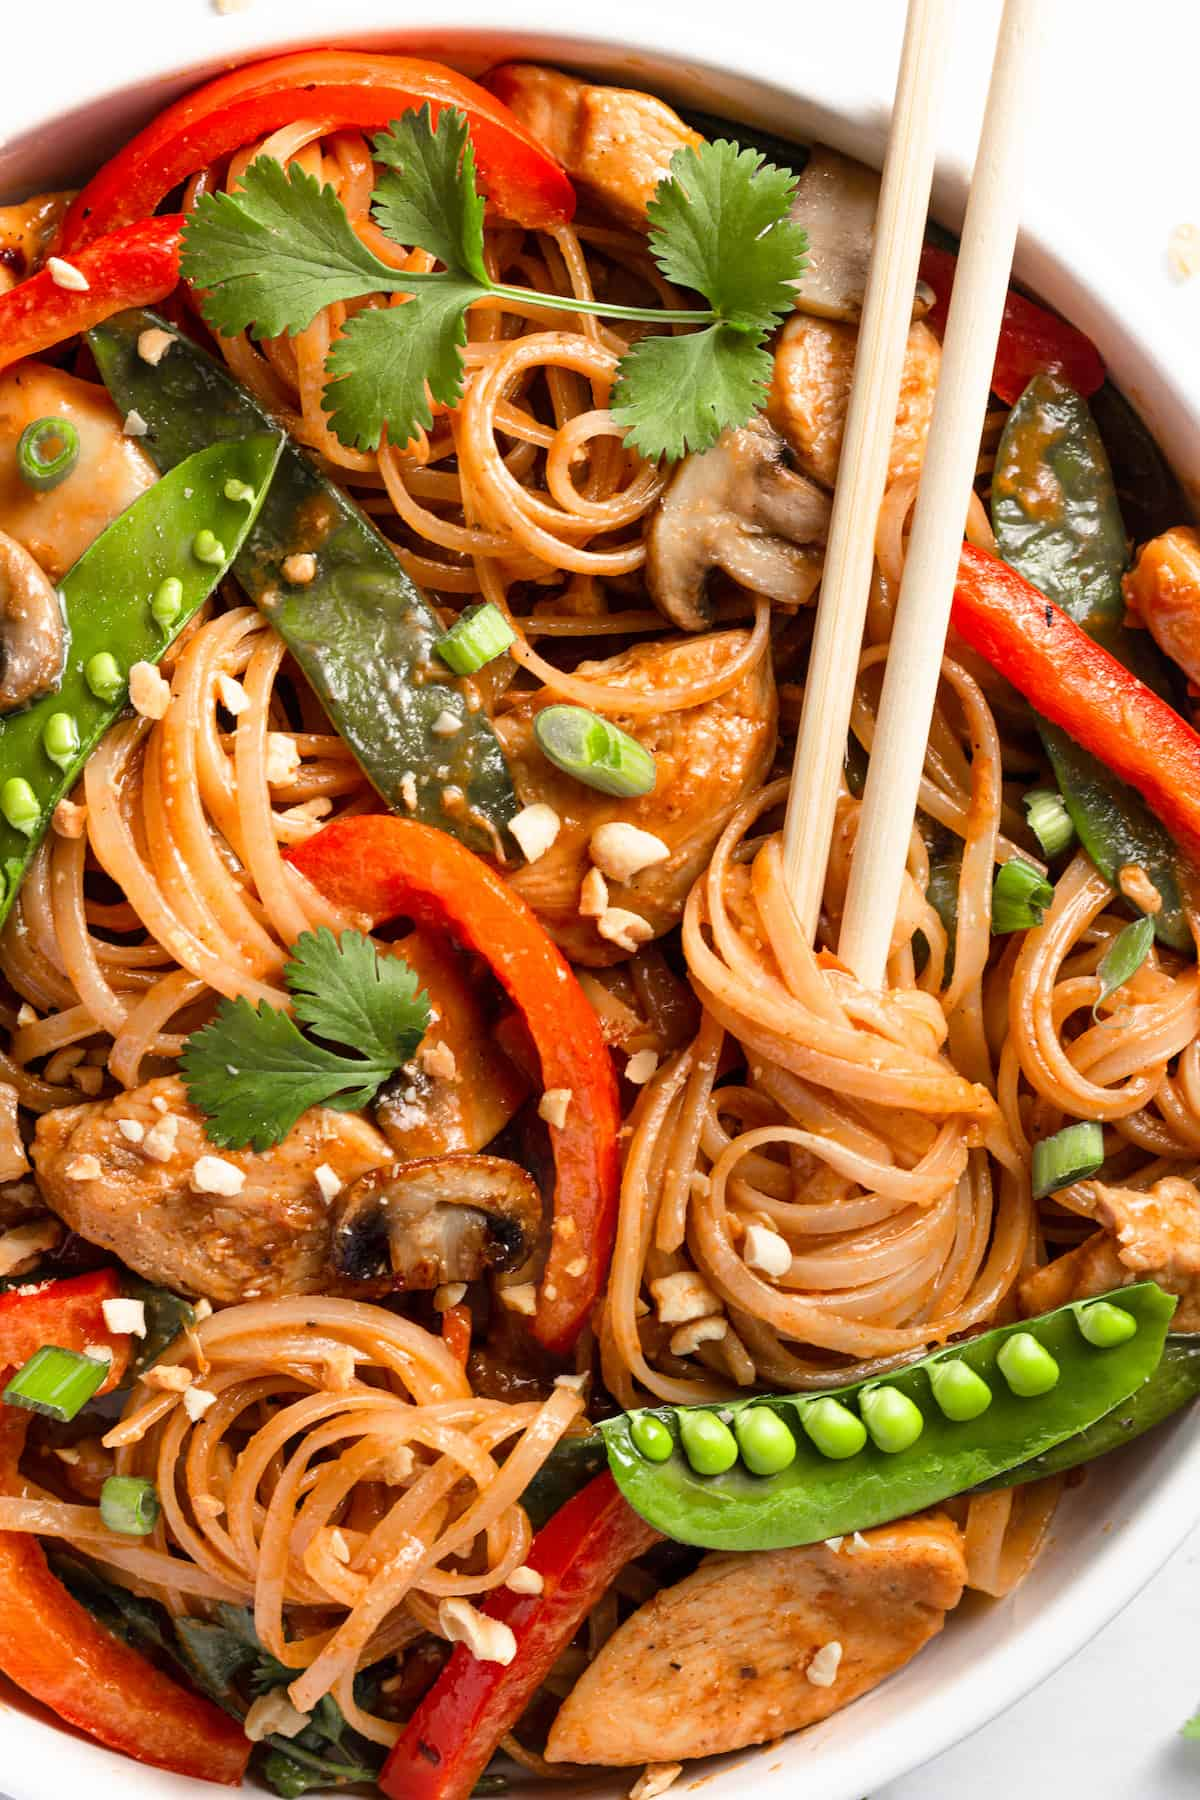 Chicken Lo Mein in a Bowl with a Pair of Wooden Chopsticks